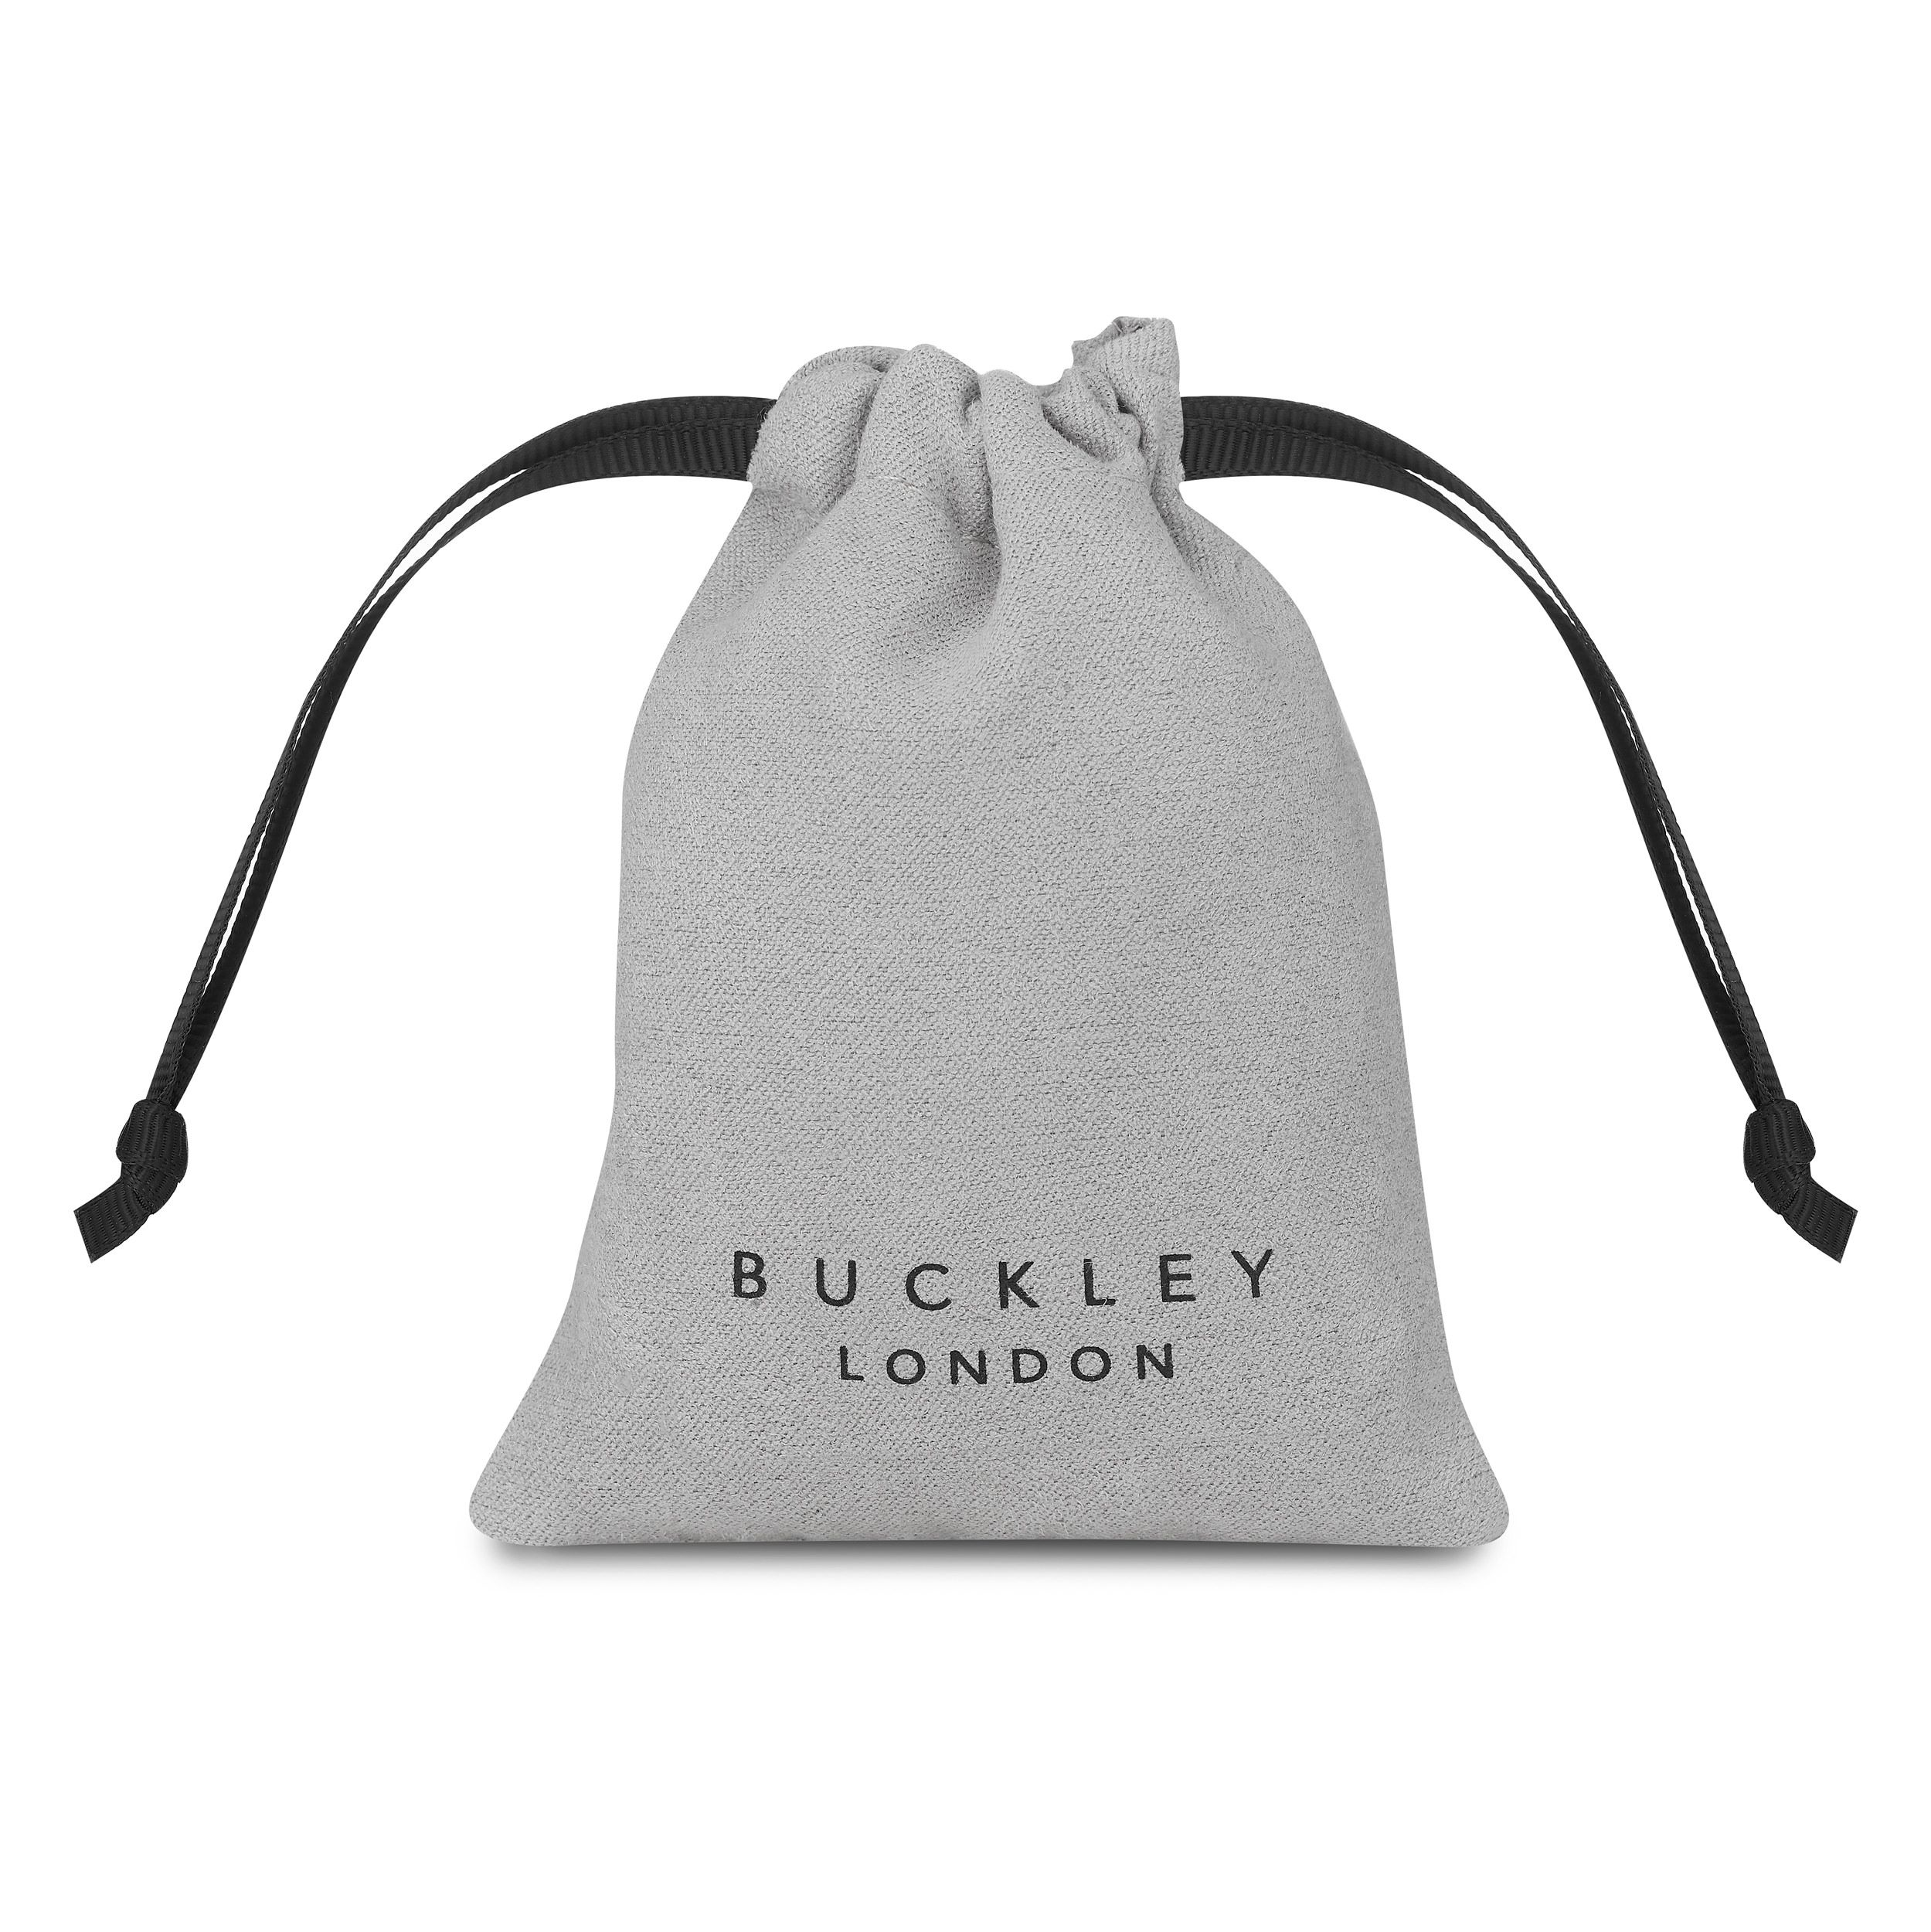 Buckley London gift pouch.